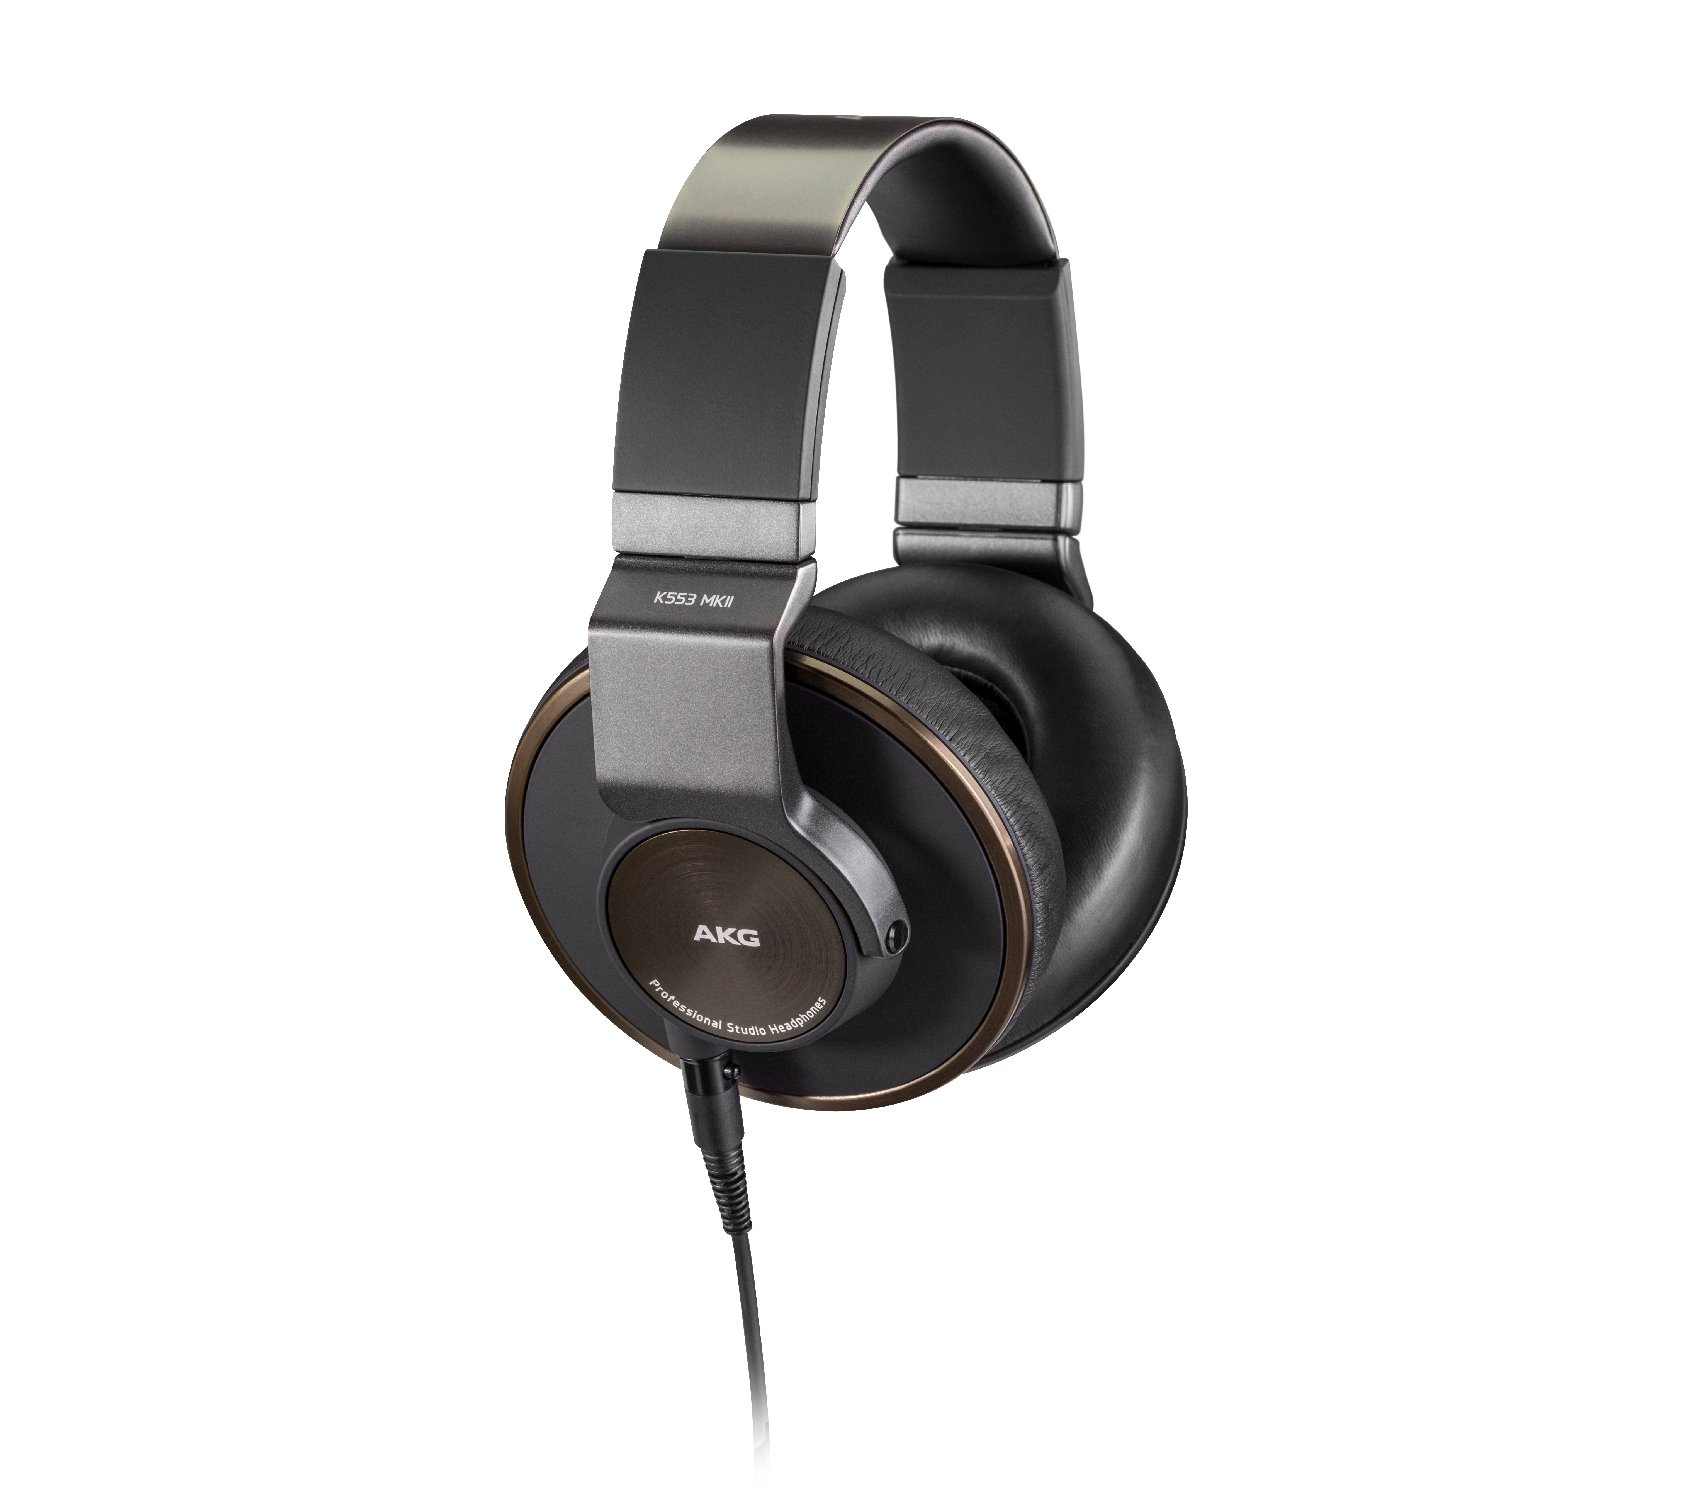 ff502fe273a AKG K553 MKII Closed-Back Over-Ear Studio Headphones. OUR PART #: K553-MKII